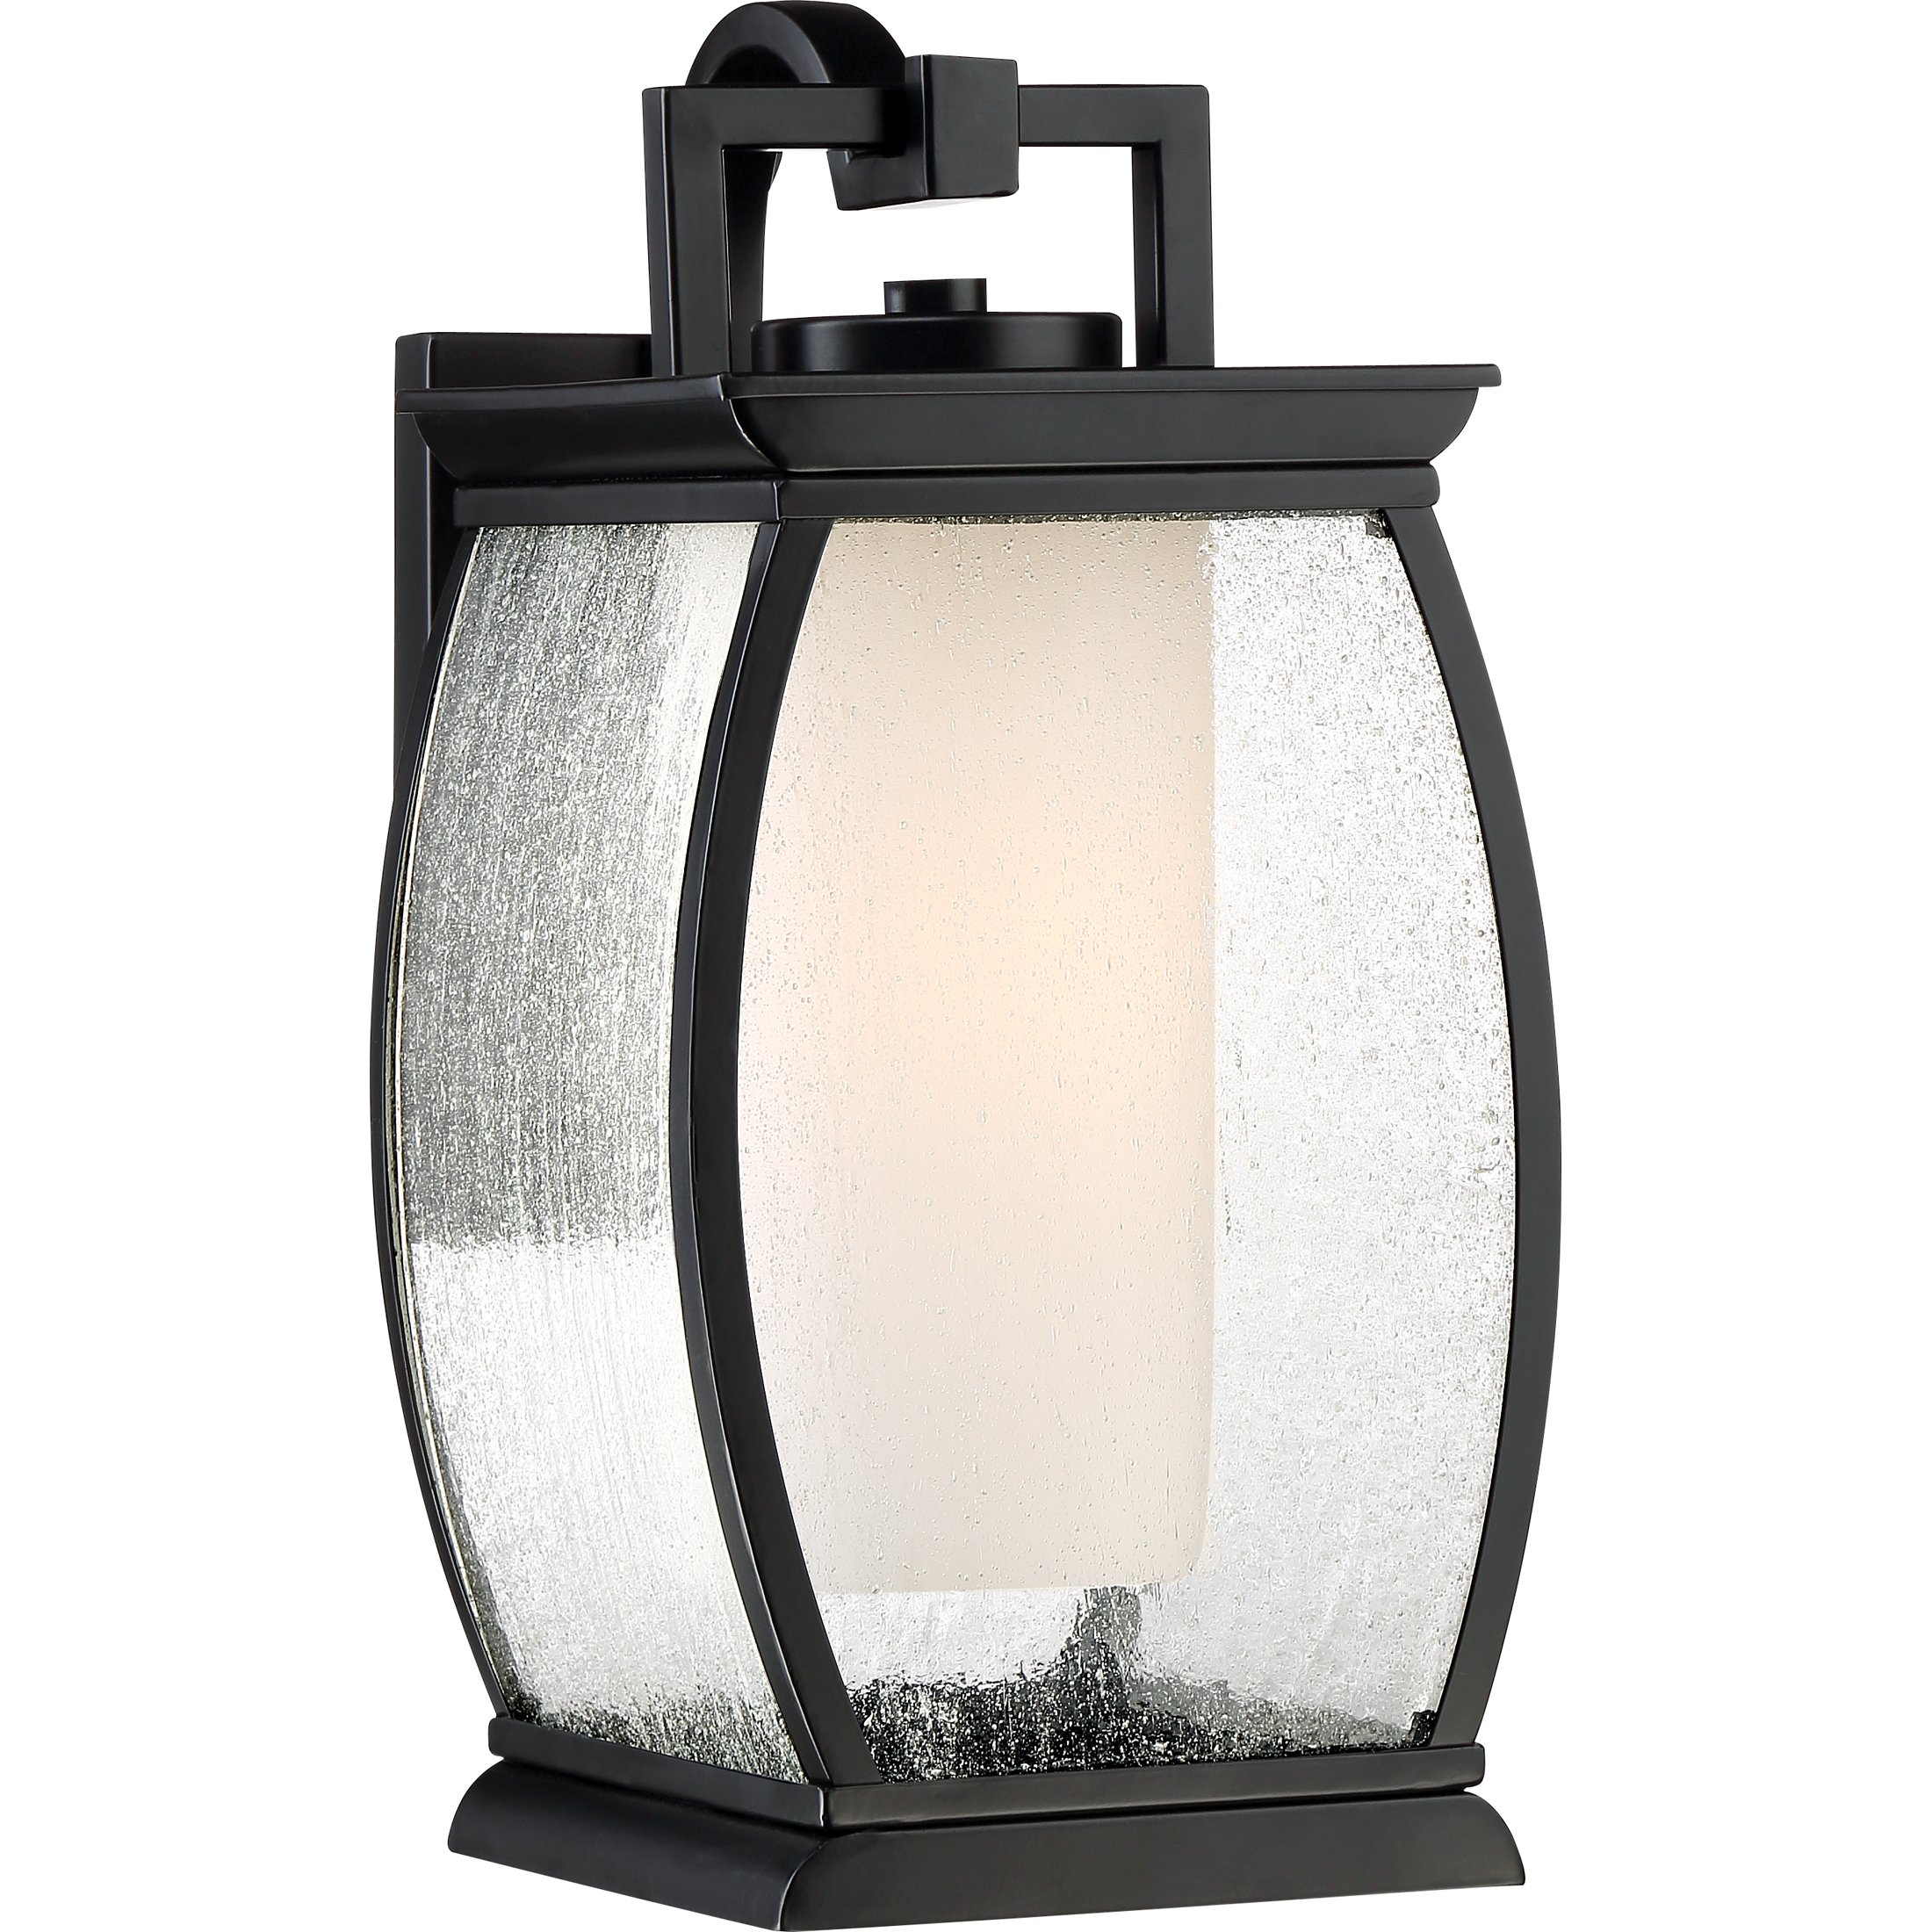 Quoizel One Light Outdoor Wall Lantern TRE8407K, Medium, Mystic Black